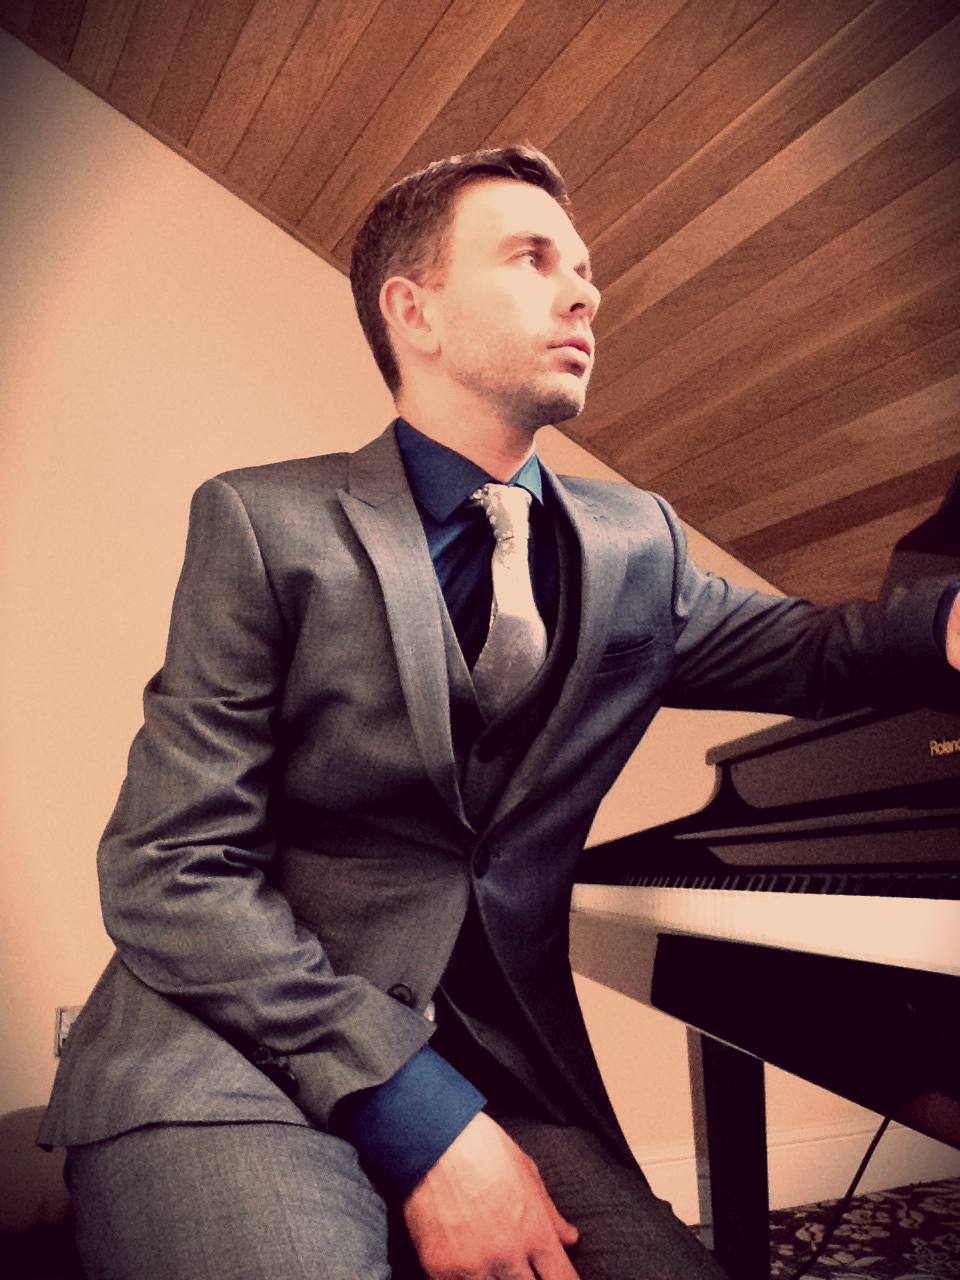 Craig Smith: wedding pianist based in Preston, Lancashire, available to perform solo wedding piano and with wedding duos and wedding bands